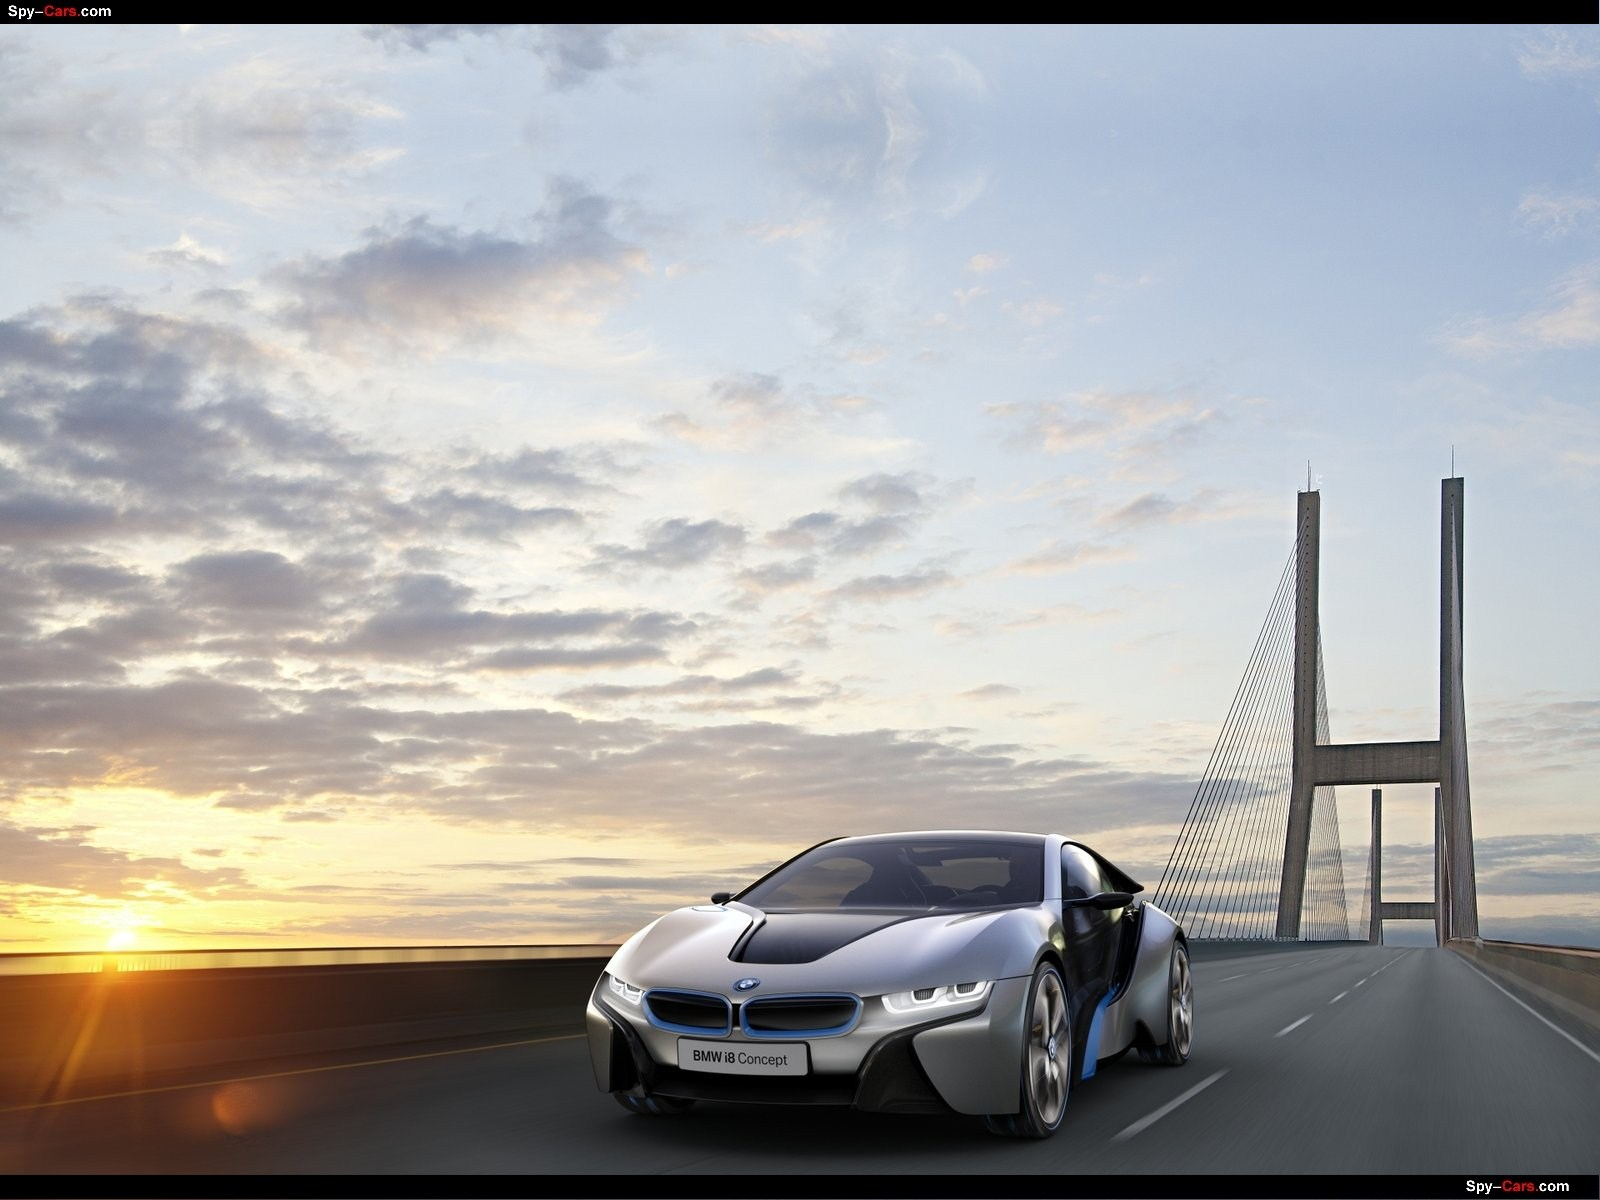 BMW - Auto twenty-first century: 2011 BMW i8 Concept